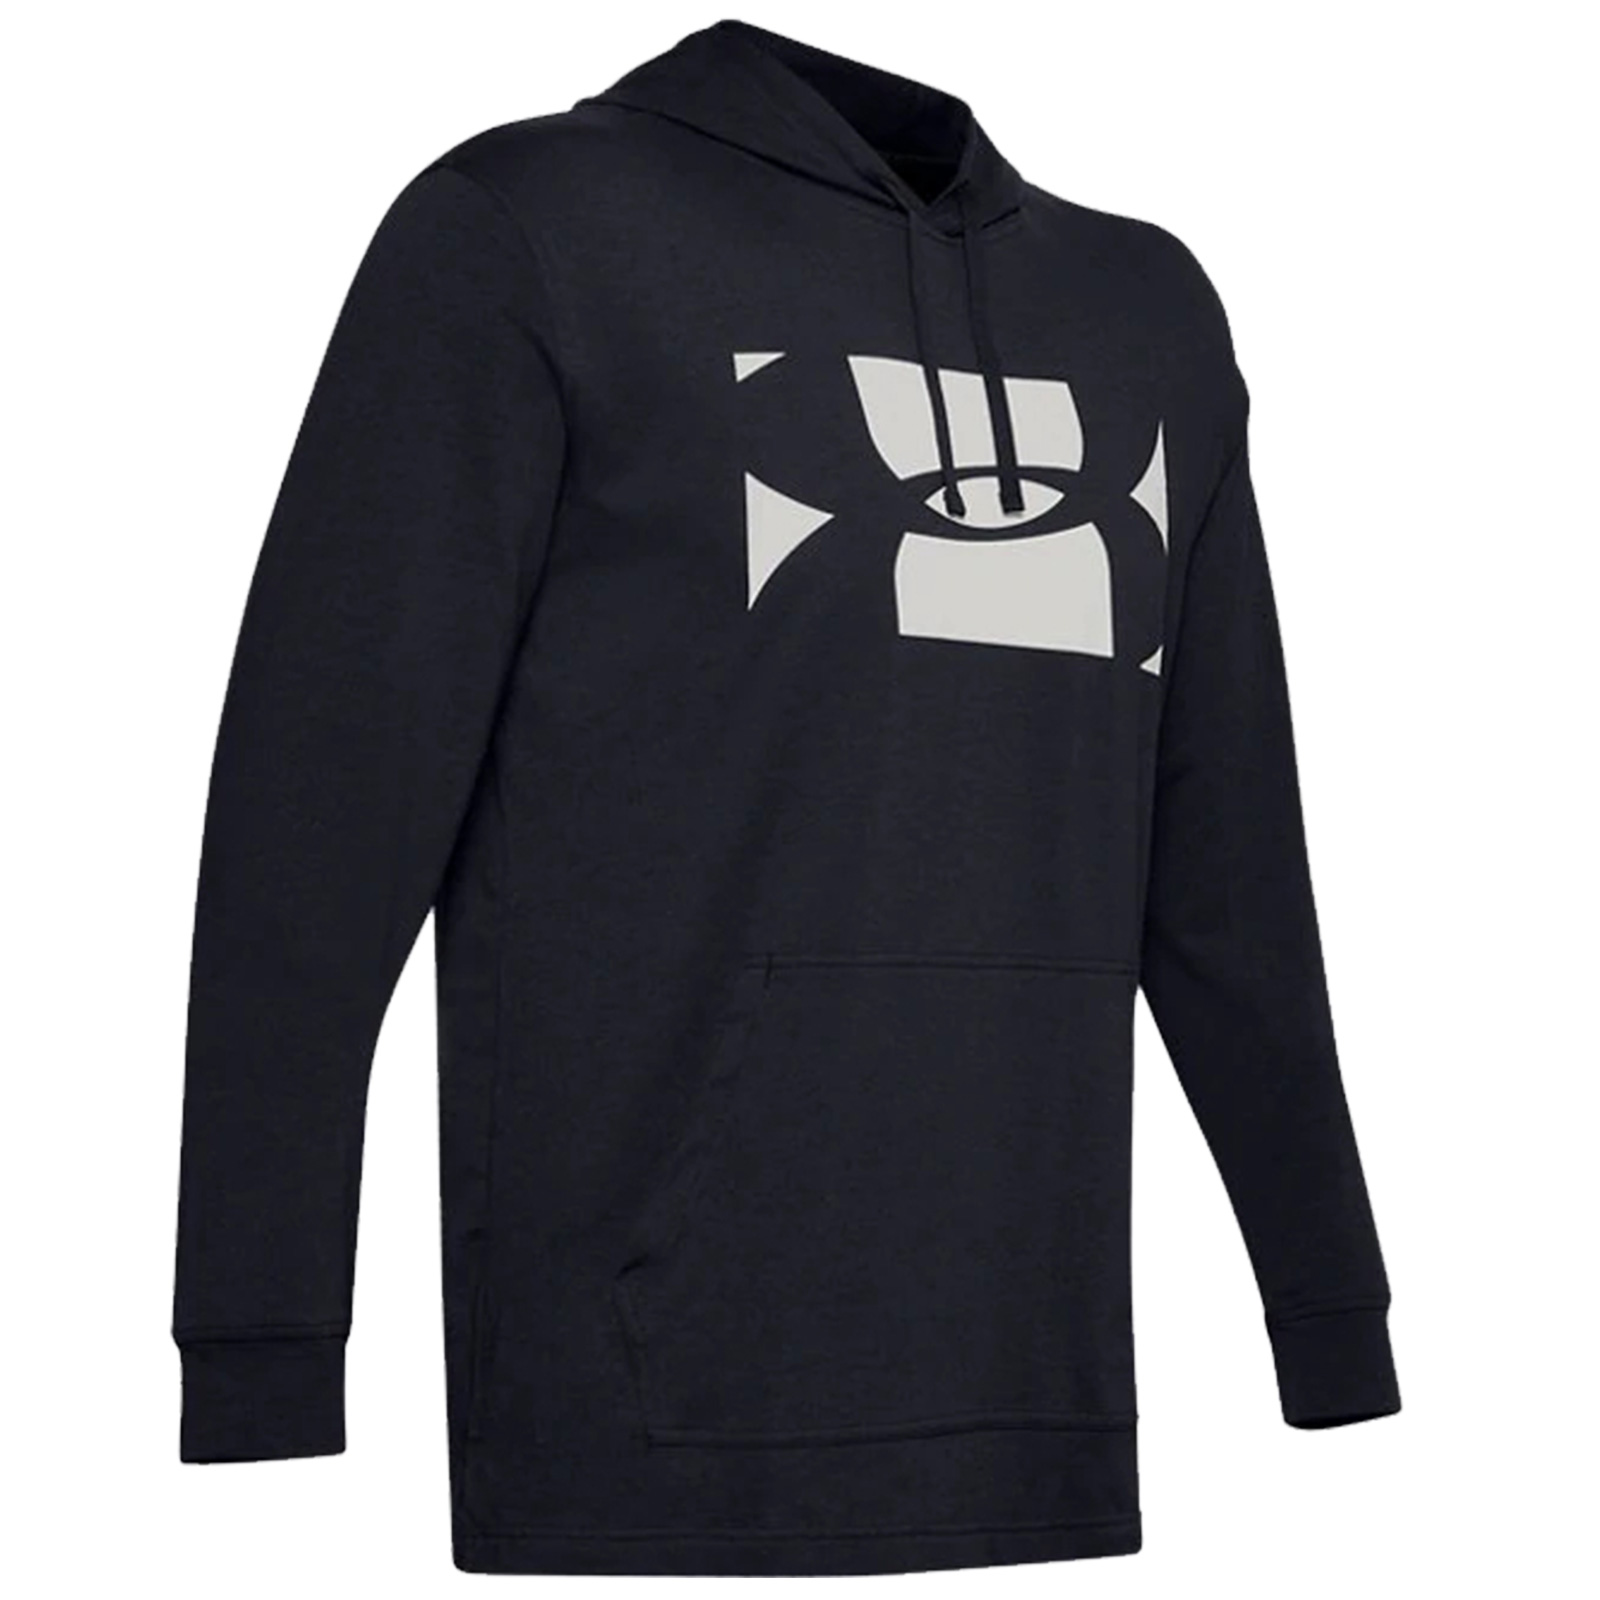 Indexbild 4 - Under Armour Mens Sportstyle Hoodie - Gym Pullover Hooded Top Sports UA